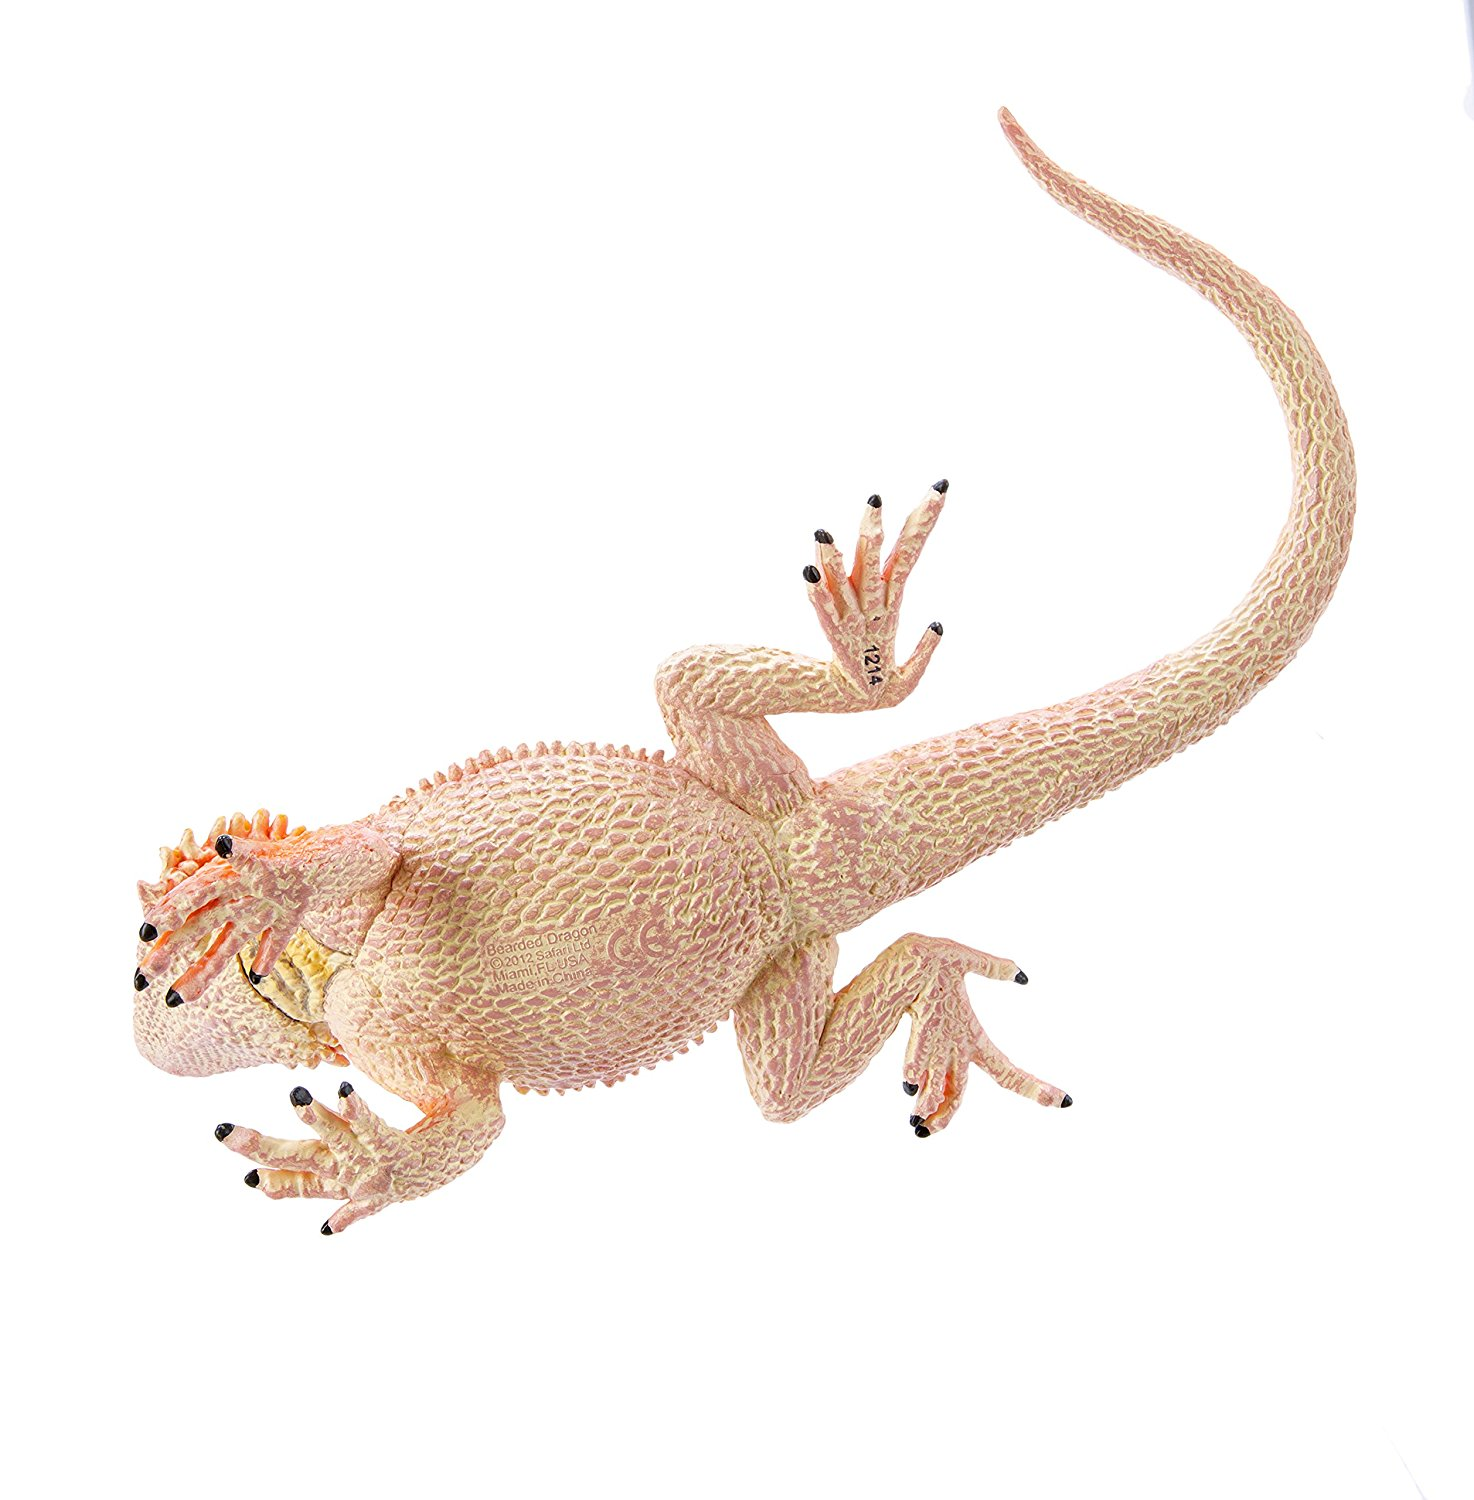 ed96bb7c109 Incredible Creatures Bearded Dragon, One of the most recognizable lizards,  Bearded Dragons are hardy reptiles that can grow to two feet in length. ...